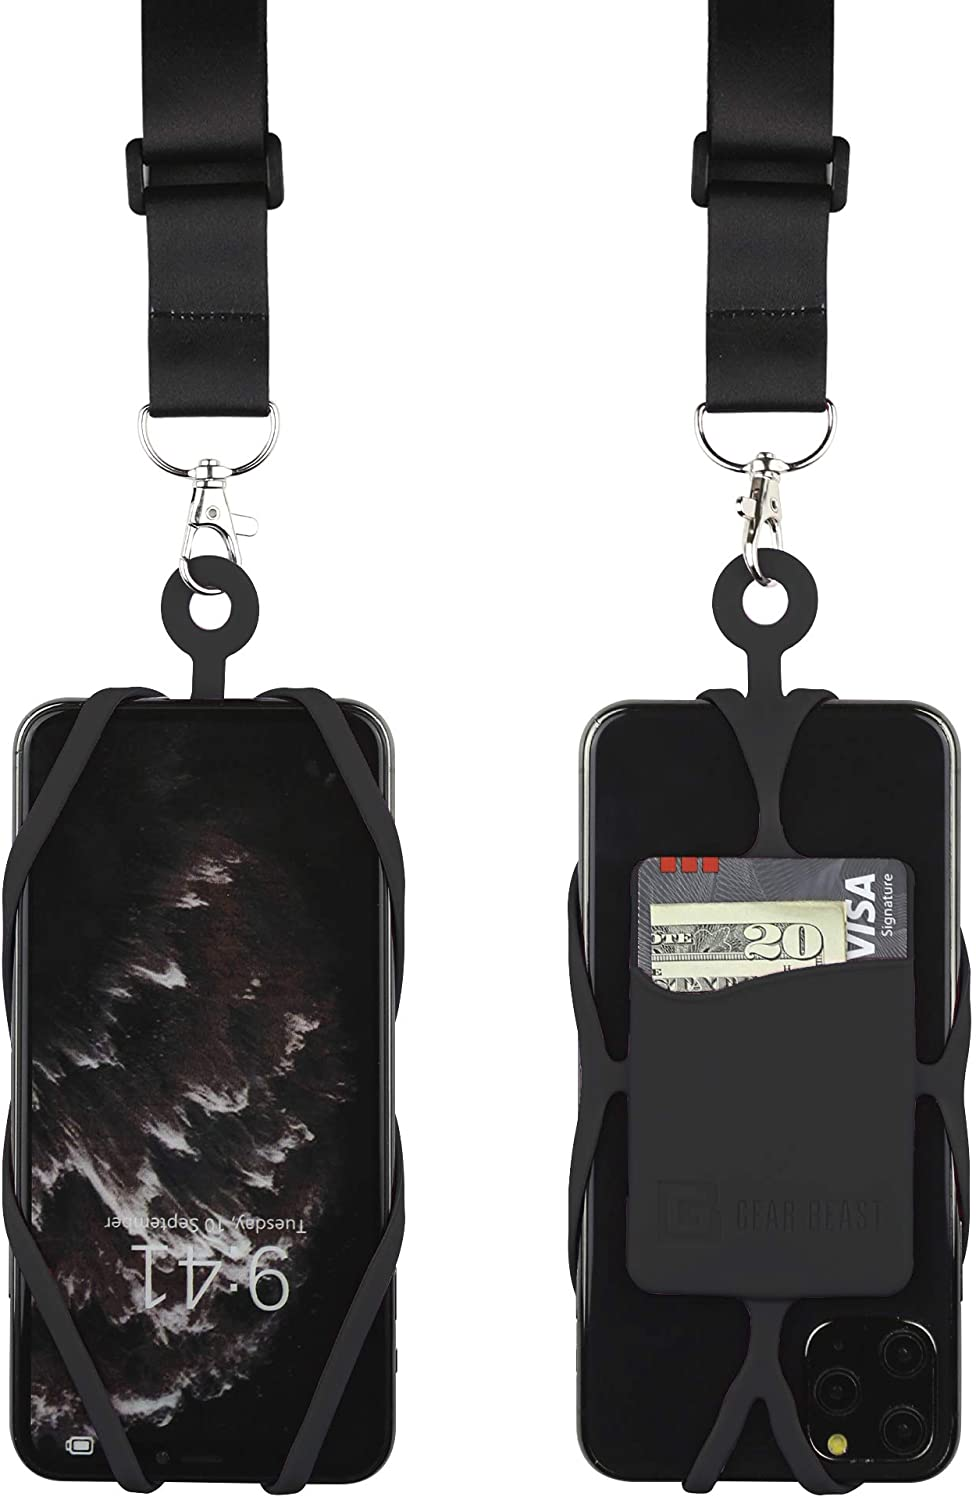 Gear Beast Cell Phone Lanyard with Adjustable Neck Strap Compatible with iPhone Galaxy & Most Smartphones, Silicone Phone Holder with Card Pocket and Adjustable Satin Polyester Lanyard